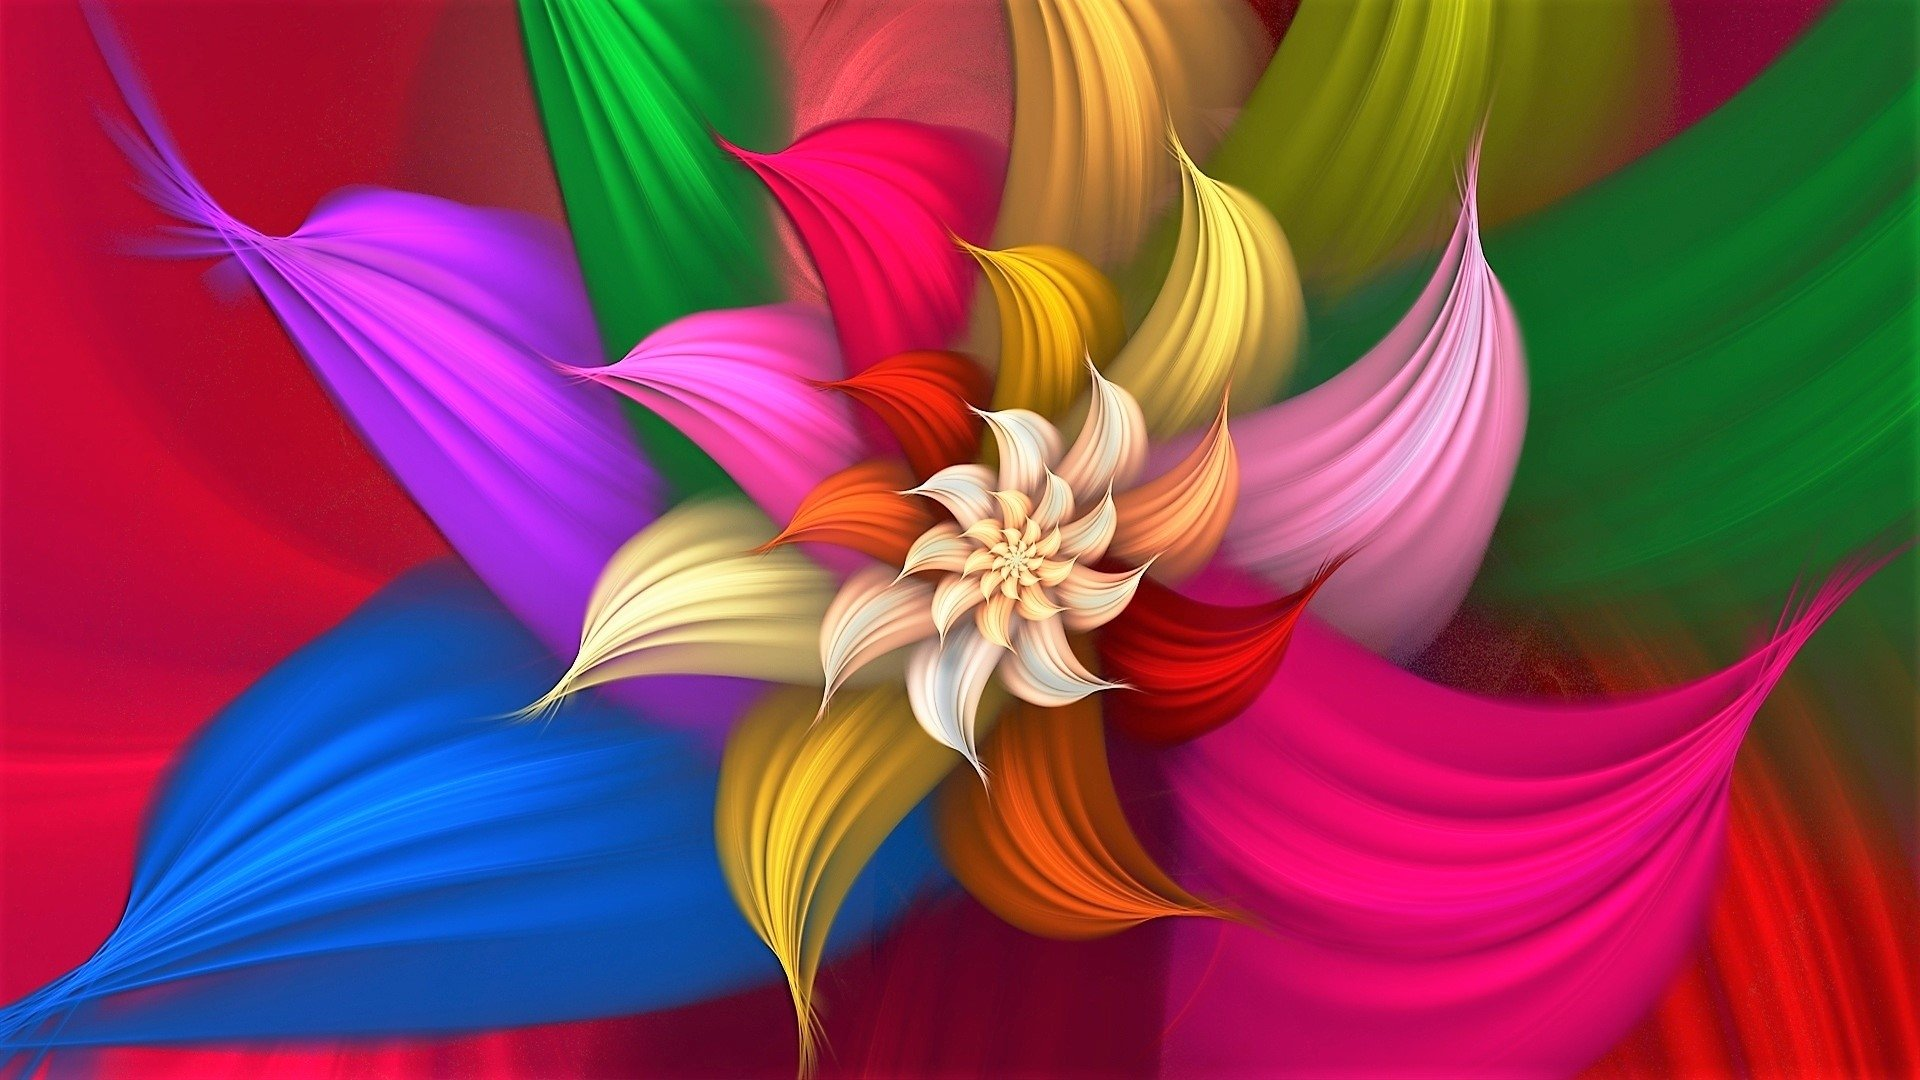 Colorful Abstract Flower Hd Wallpaper Hintergrund